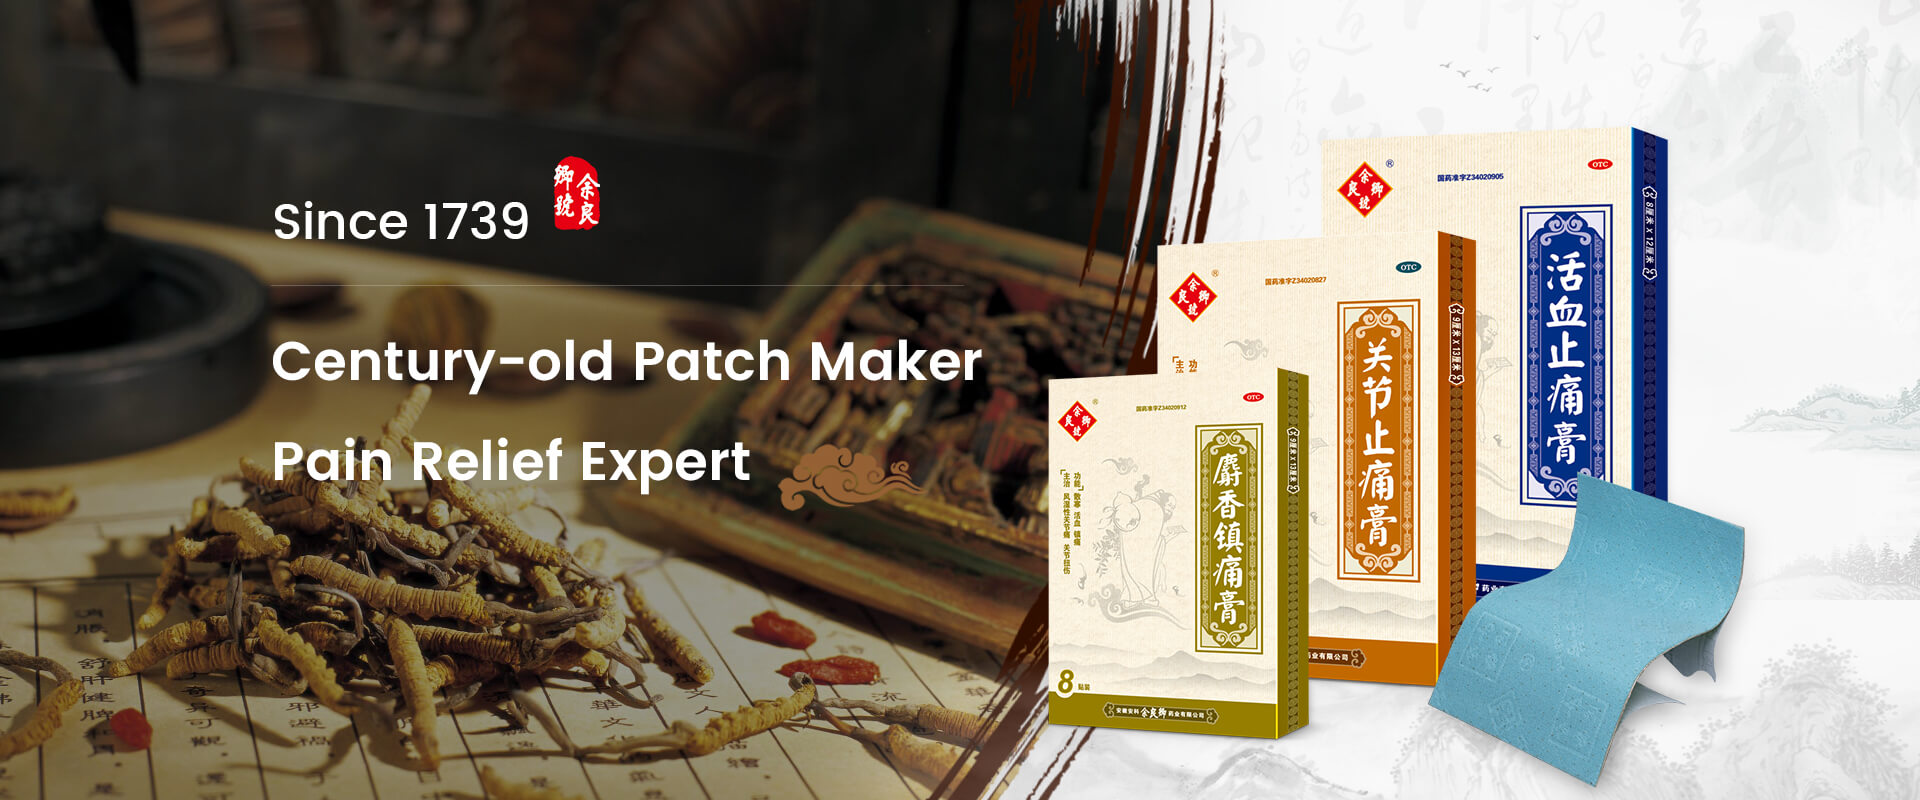 Patch maker pain relief expert